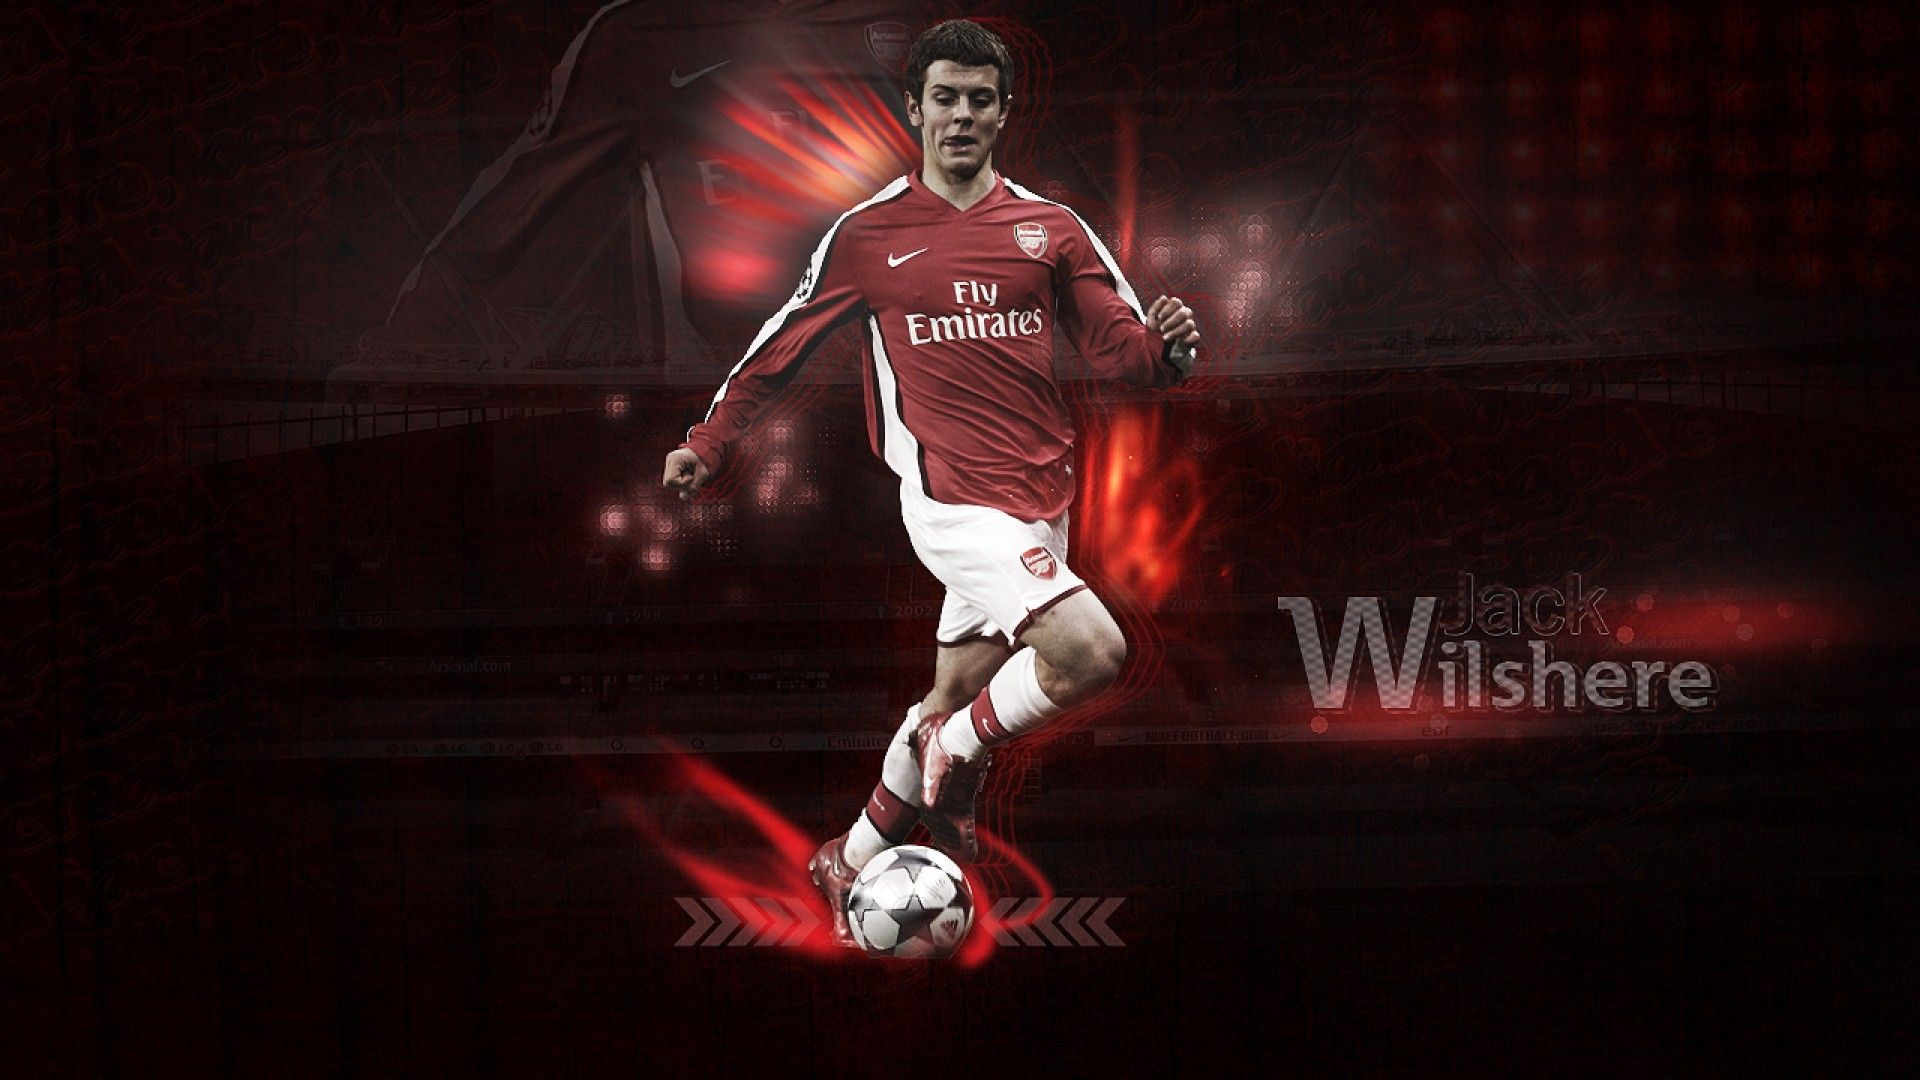 Jack Wilshere And Arsenal Logo Wallpaper Best | Free Download ...